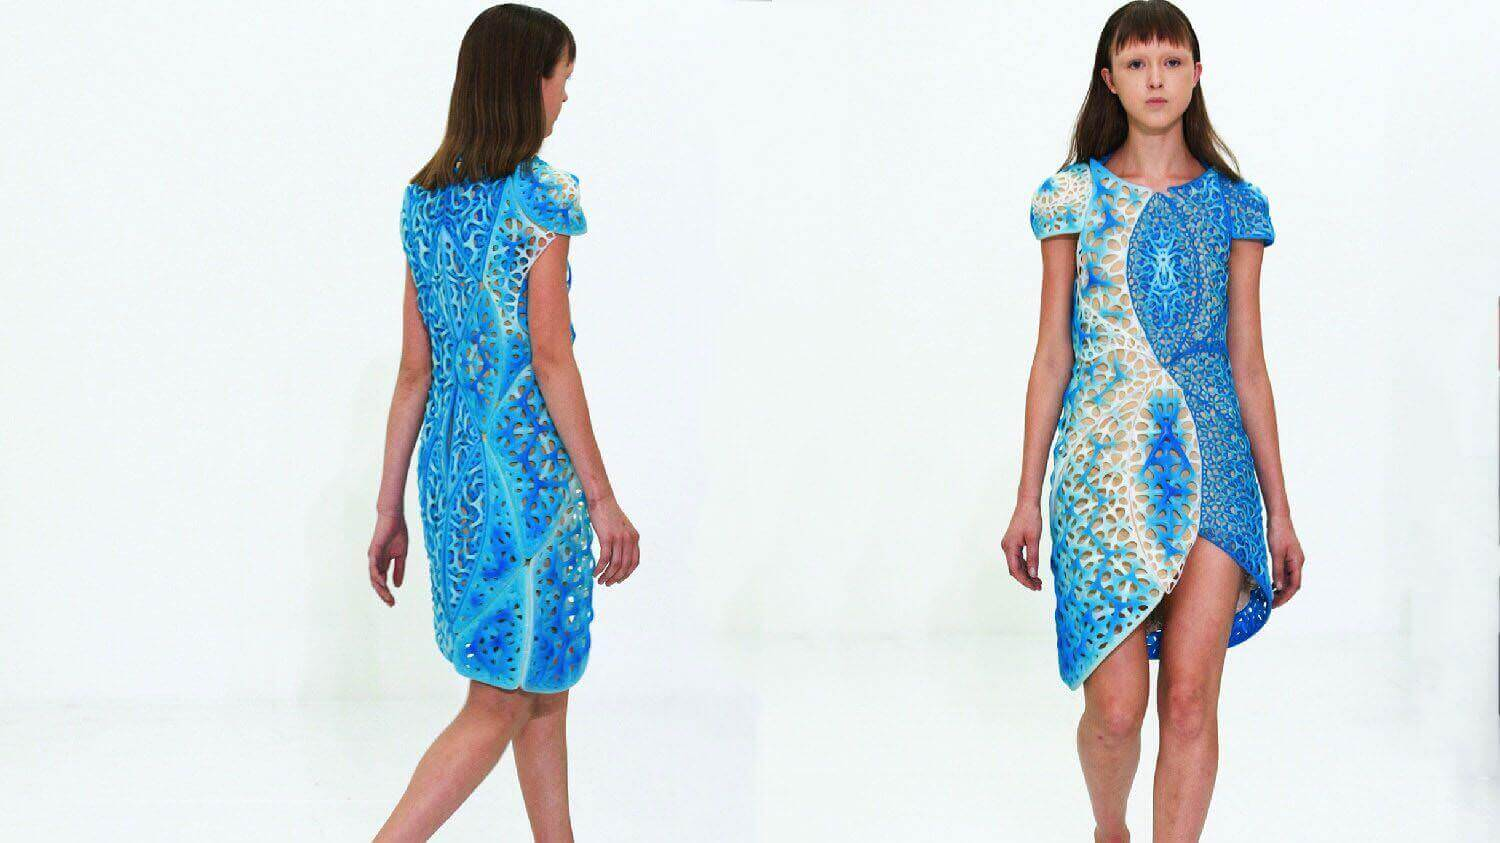 Oscillation is a 3D Printed Dress Inspired by Quantum Physics | All3DP